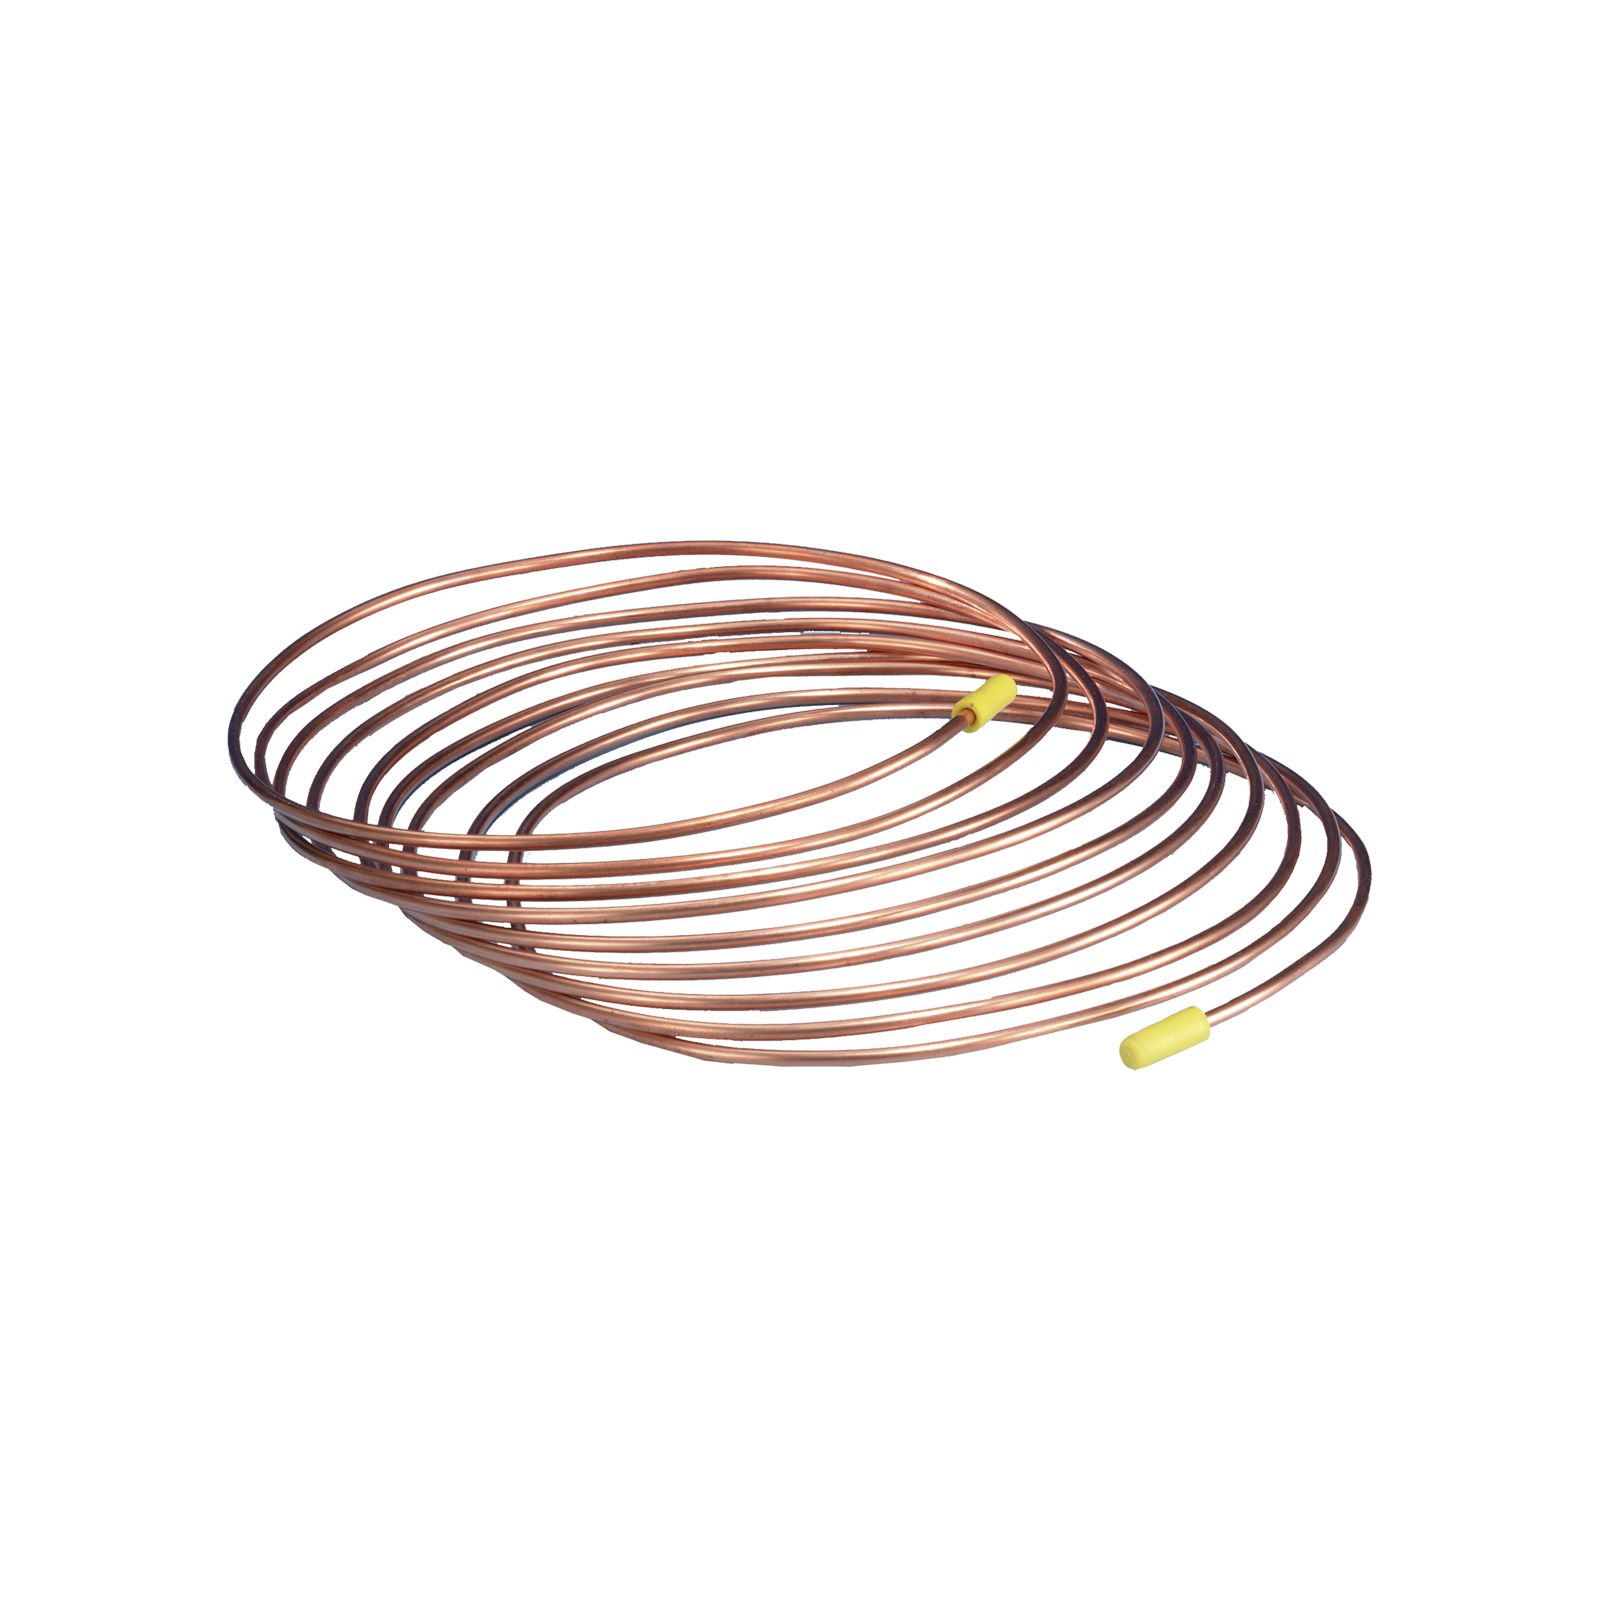 "Supco BC2 -  BC Series Bullet Restricto Capillary Tubing .040"" I.D. x 12'"